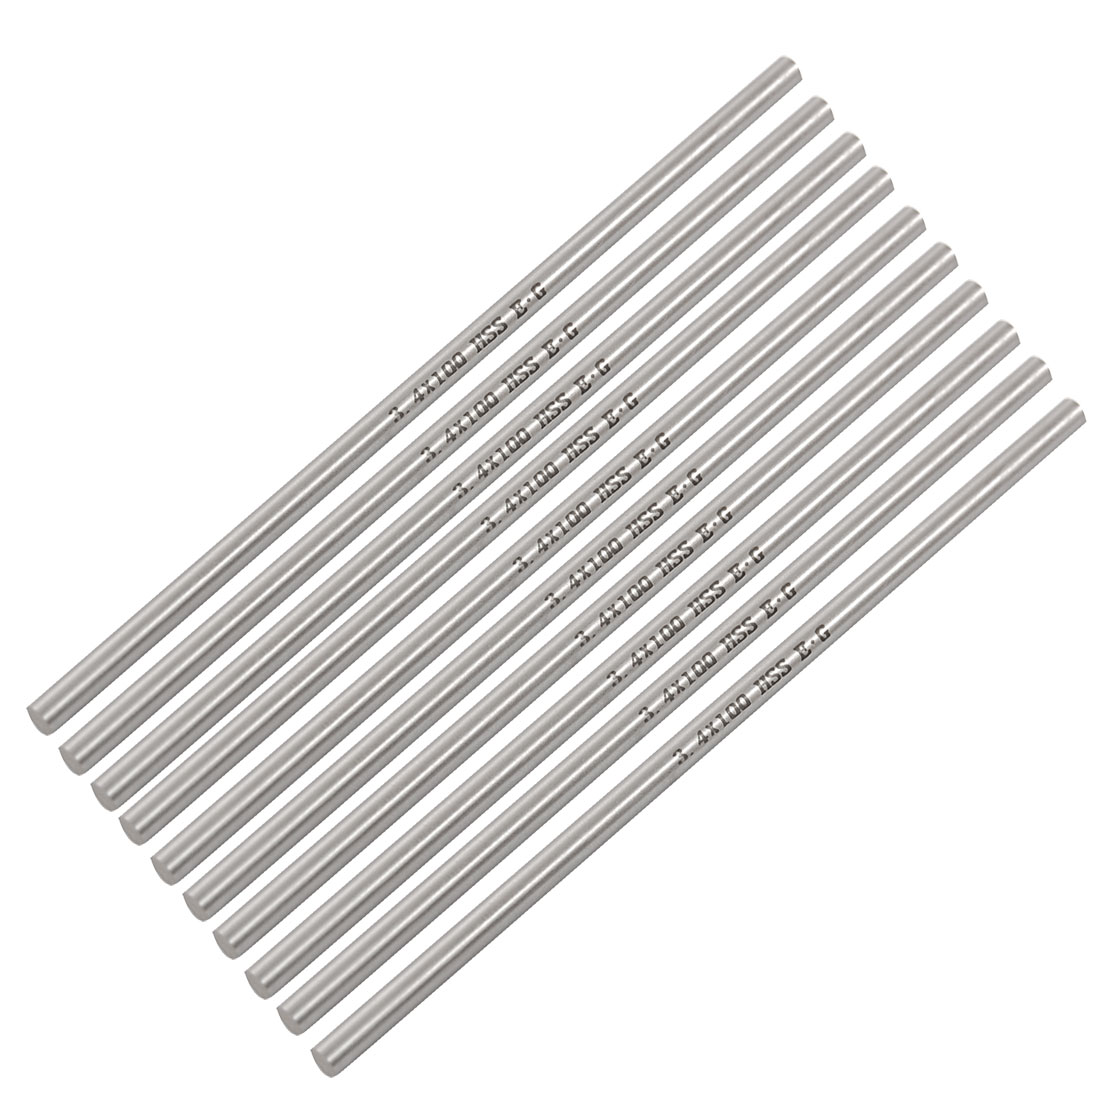 "10 Pcs 1/9"" x 3 31/32"" HSS High Speed Steel Round Lathe Bars Rods"